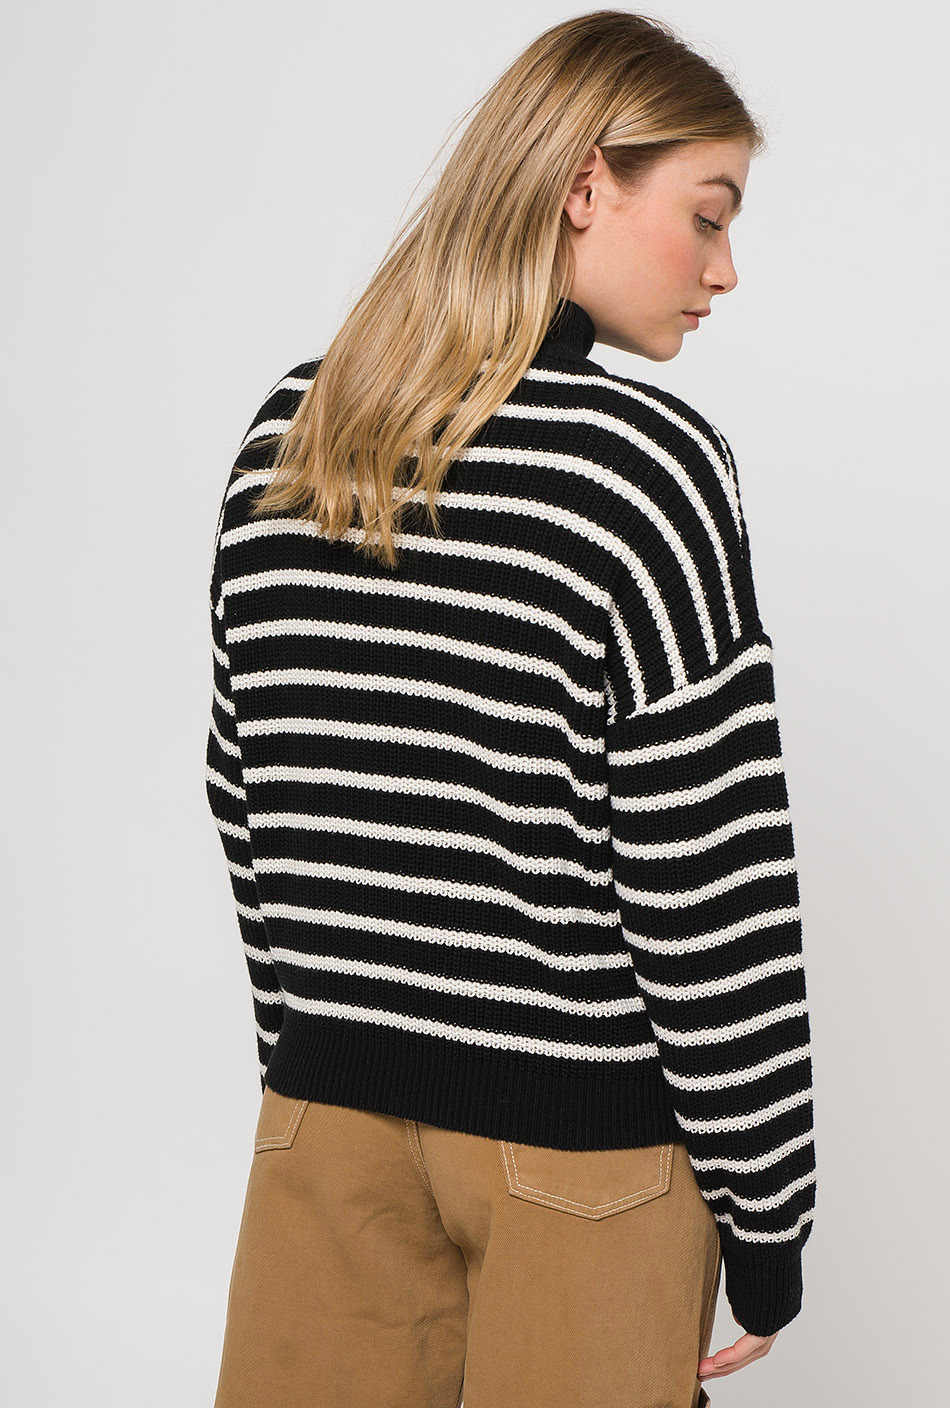 Jersey Stripes Black